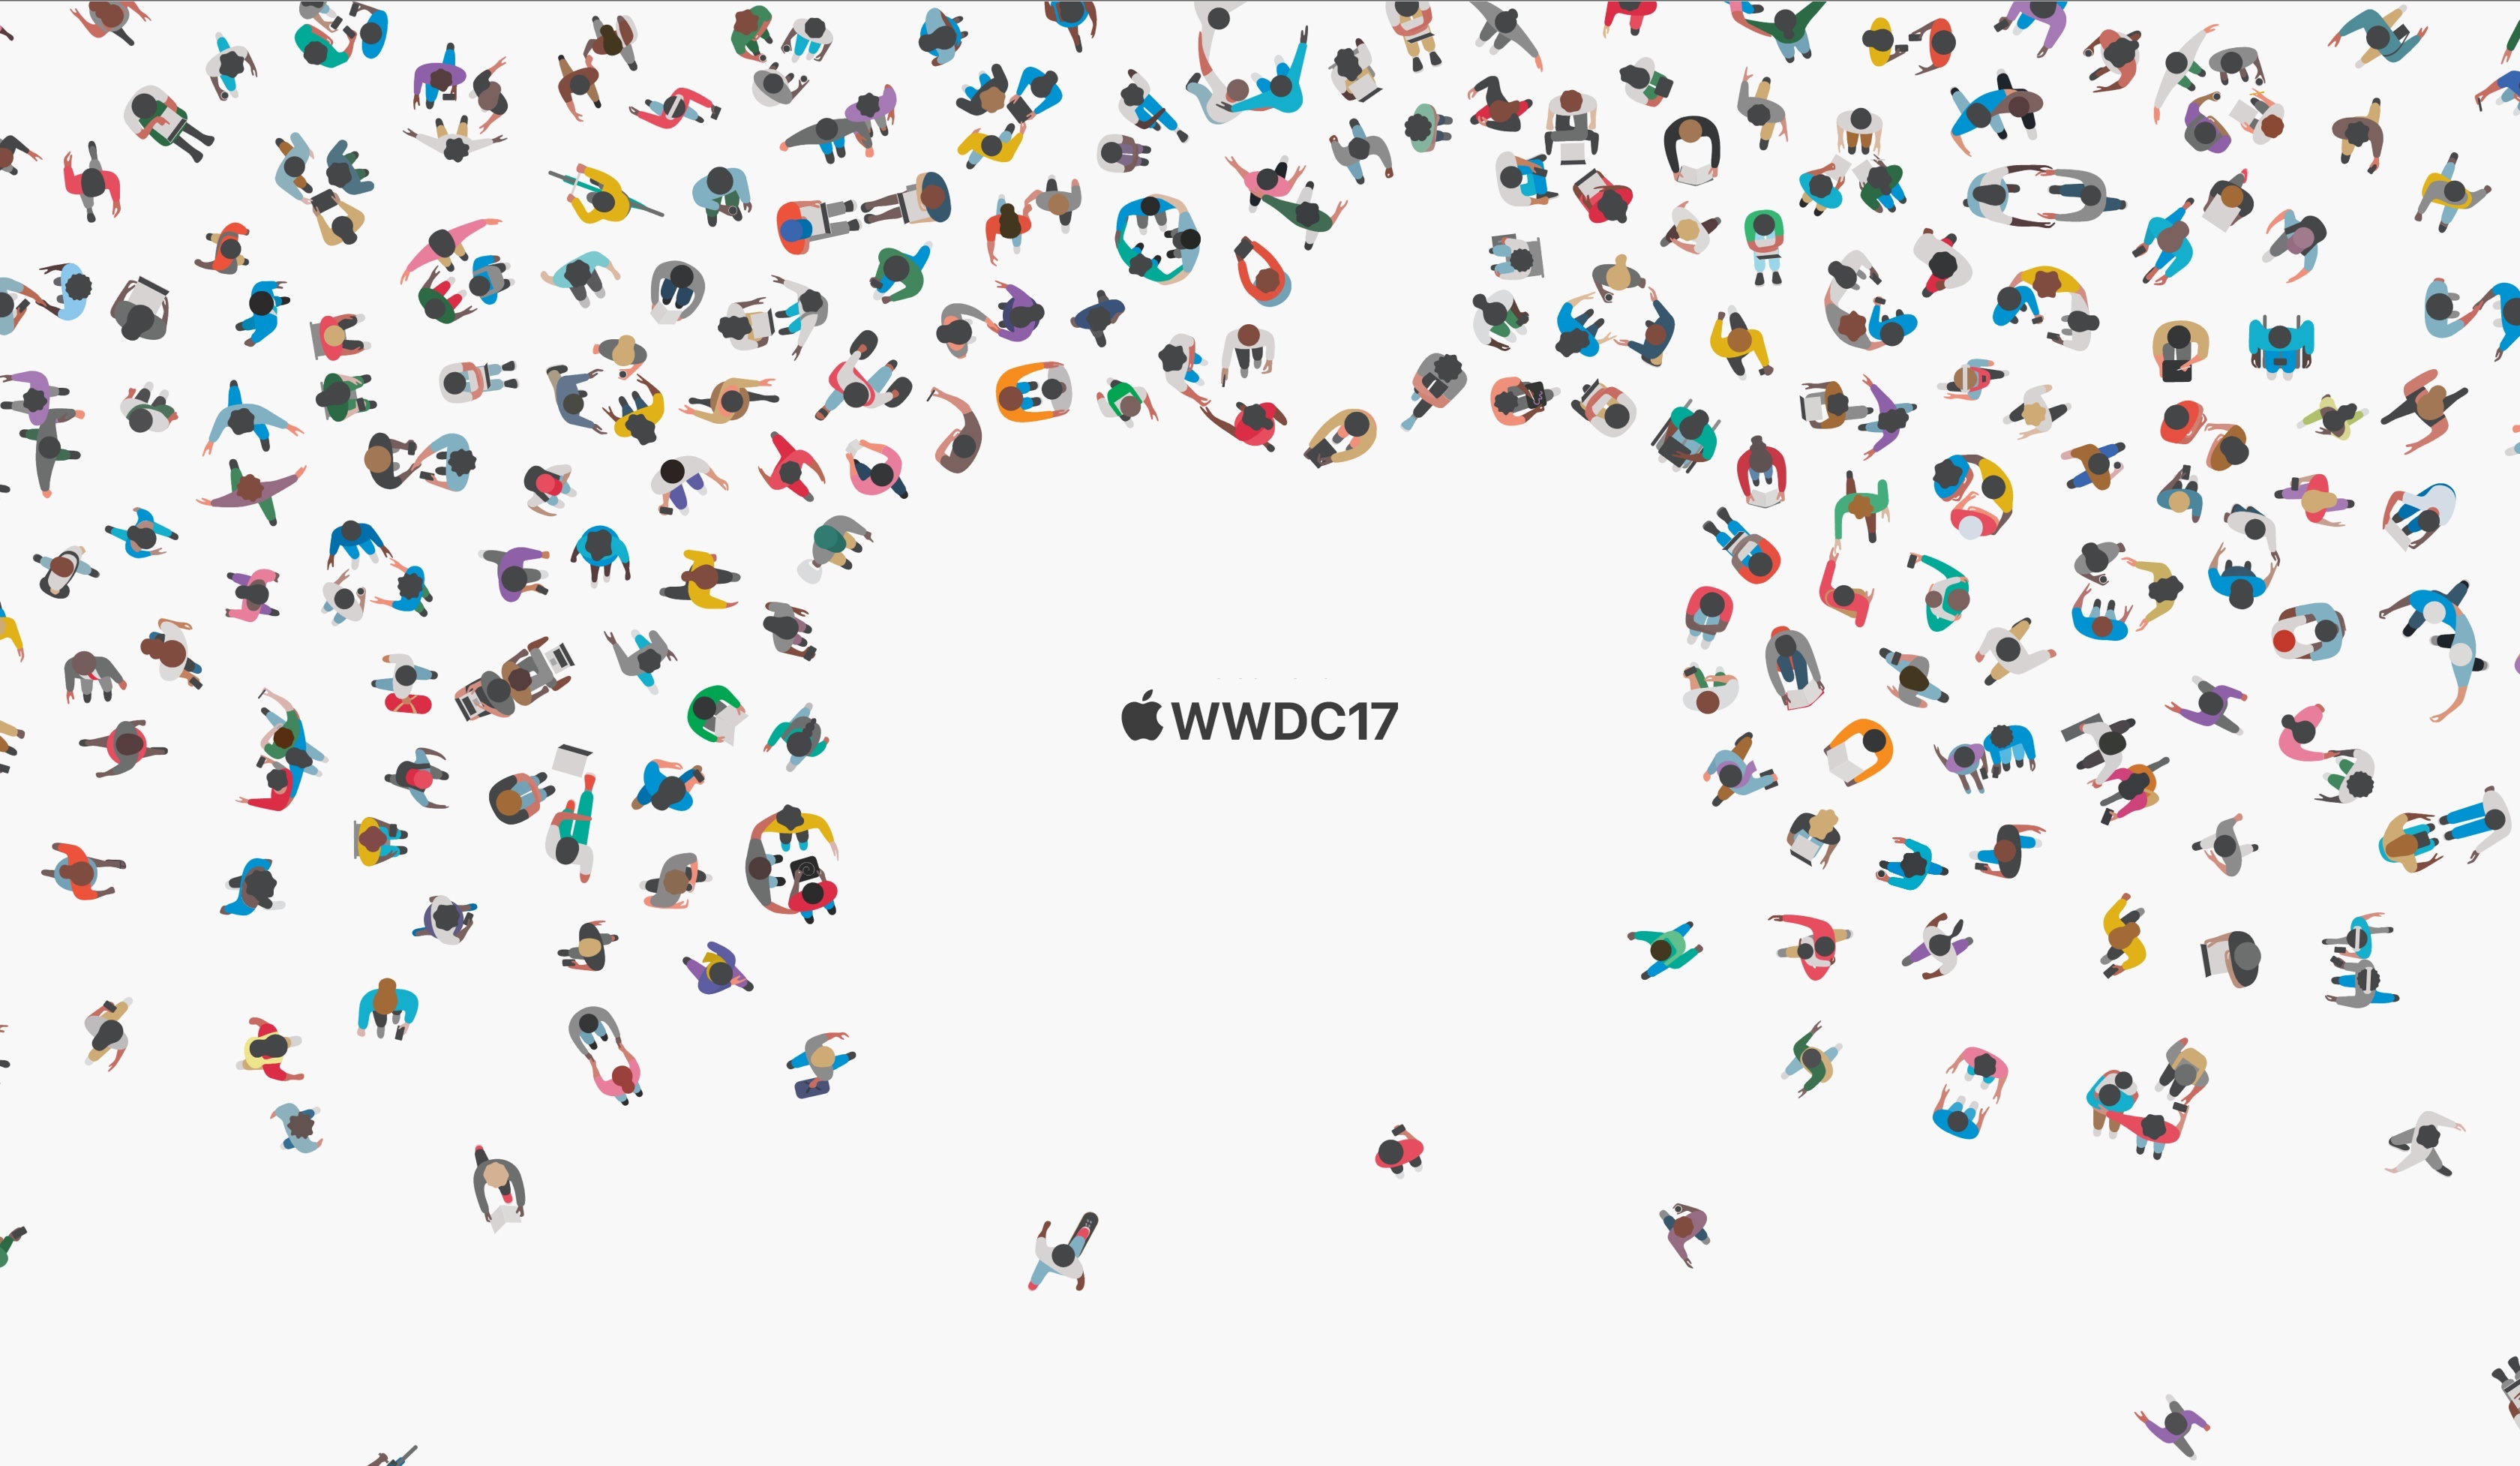 Wwdc Wallpaper 4k: WWDC 17 Wallpapers For IPhone, IPad And Mac [Download